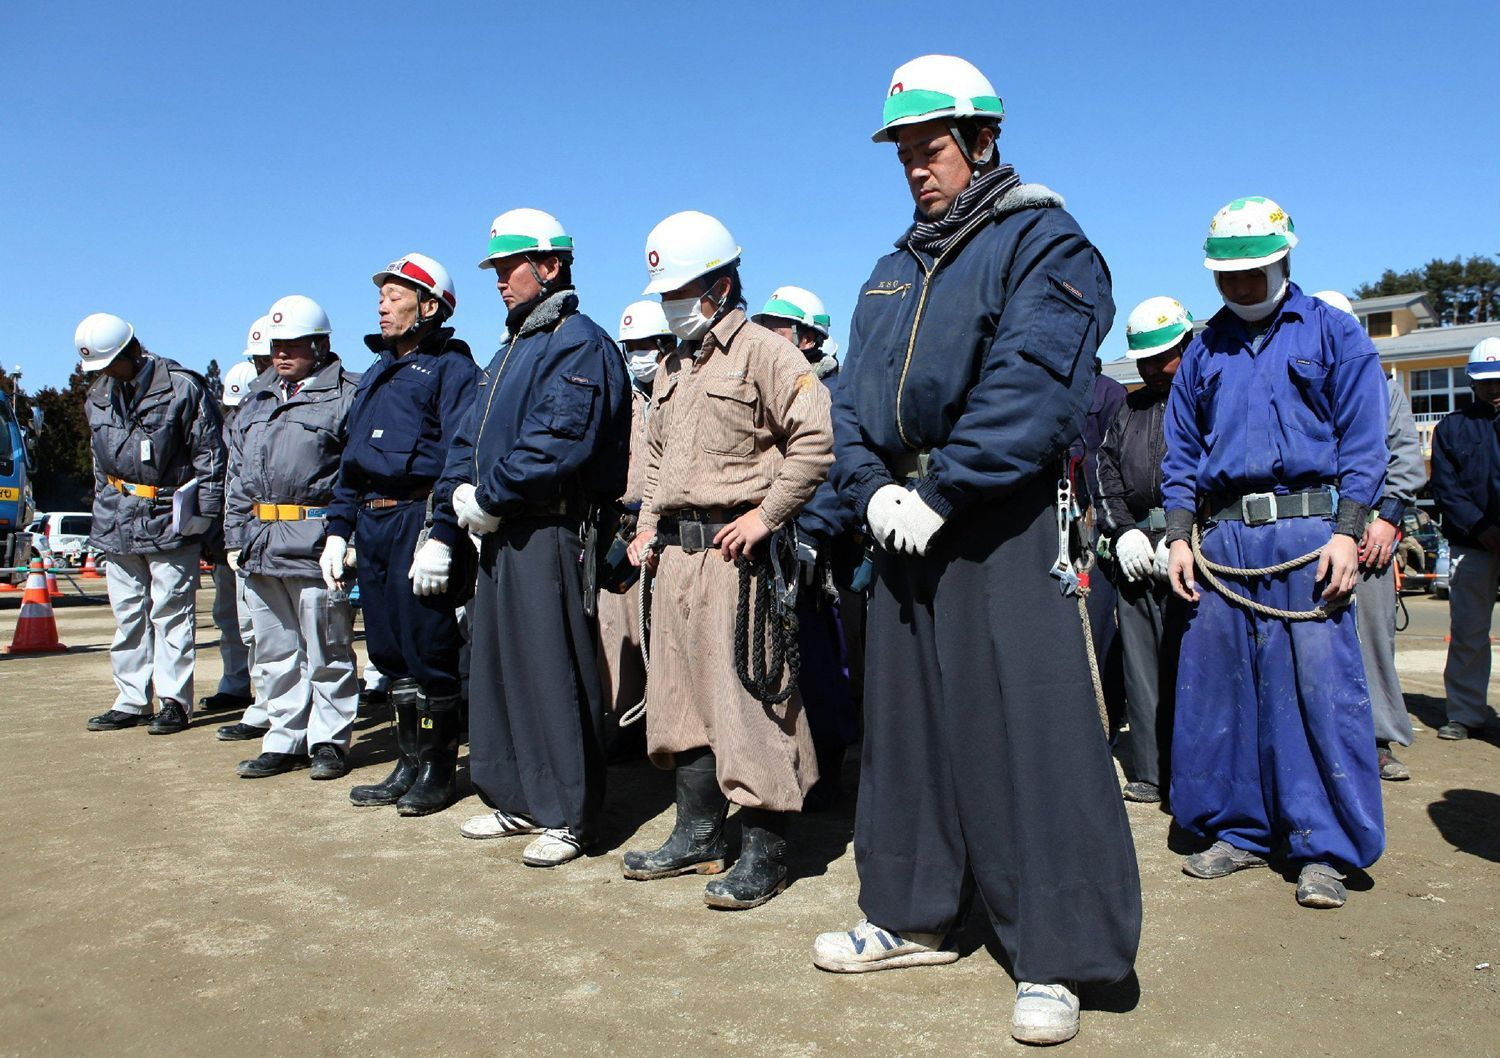 To acquire Construction do what workers wear to work pictures trends